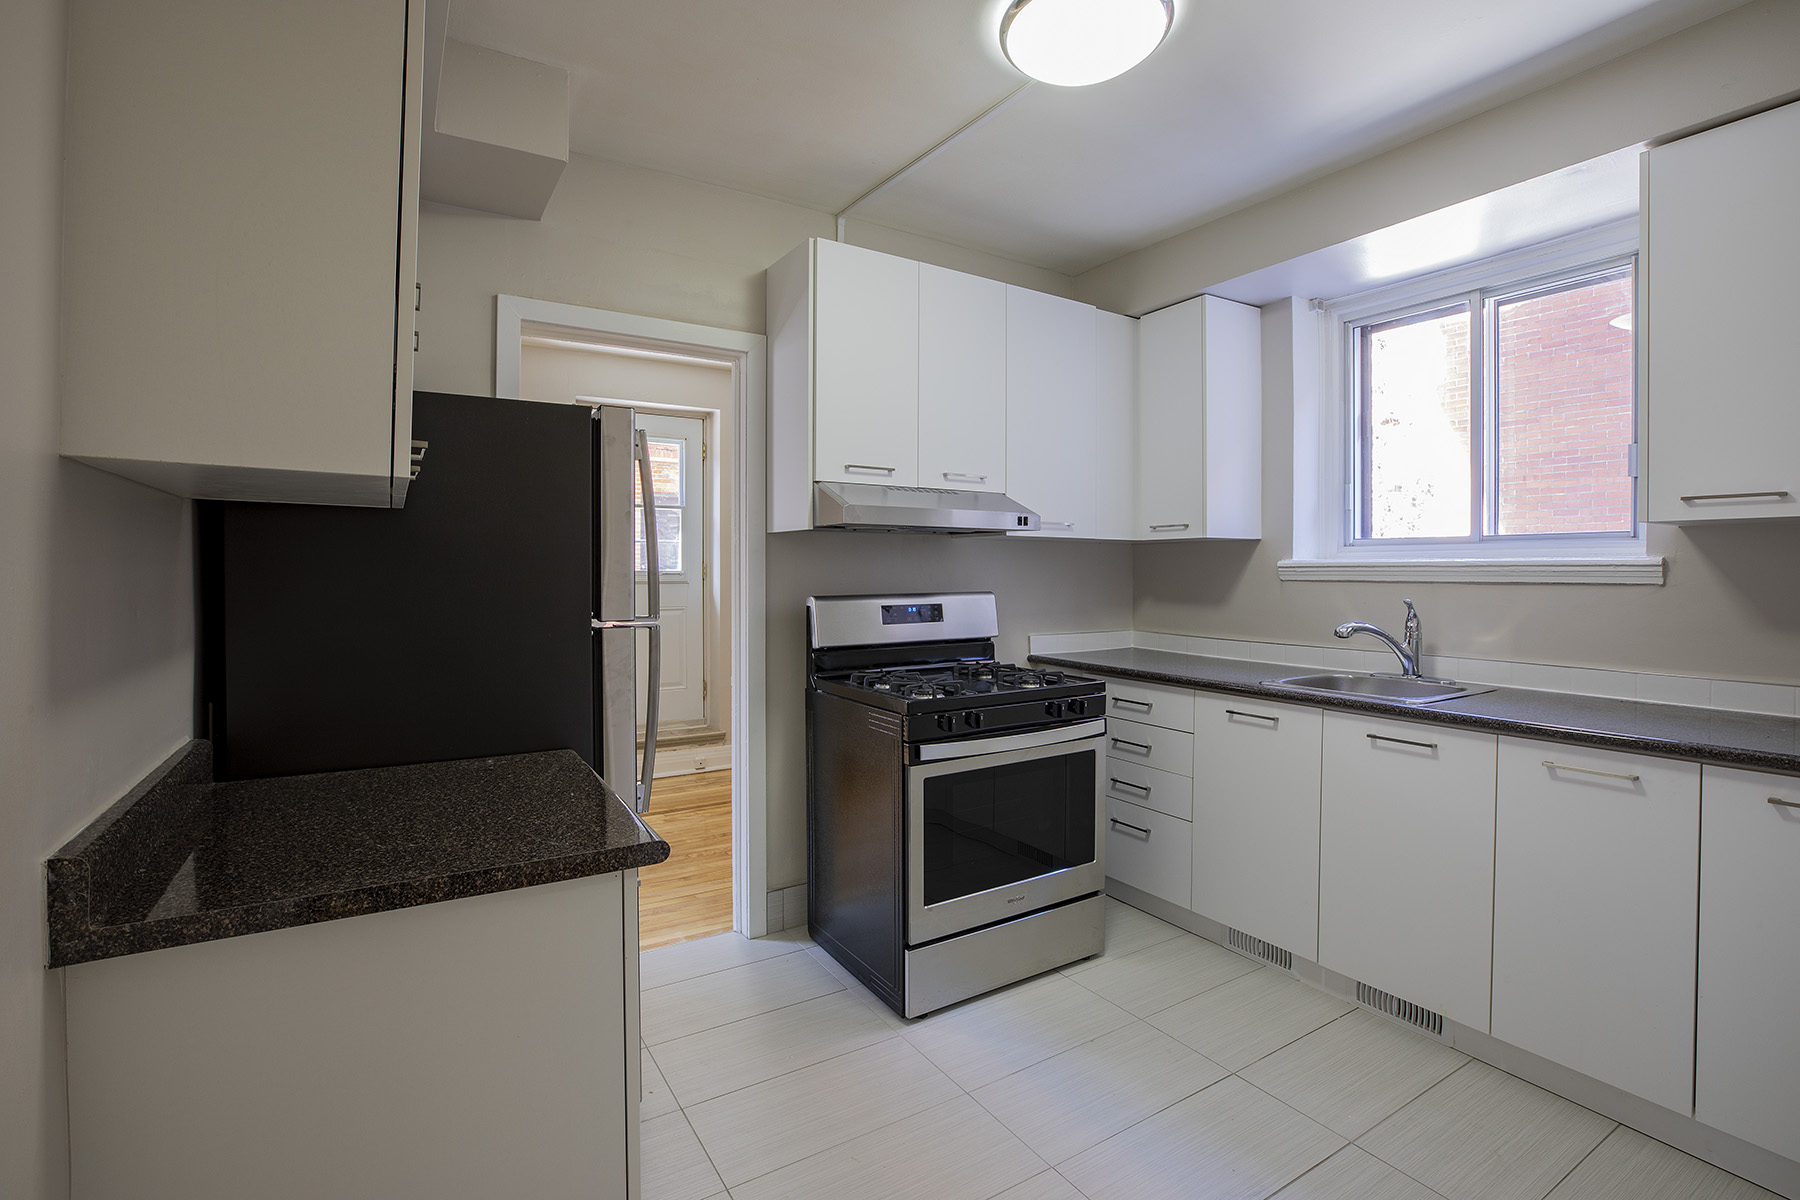 1 bedroom Apartments for rent in Cote-St-Luc at Les immeubles MacDonald - Photo 06 - RentQuebecApartments – L401535